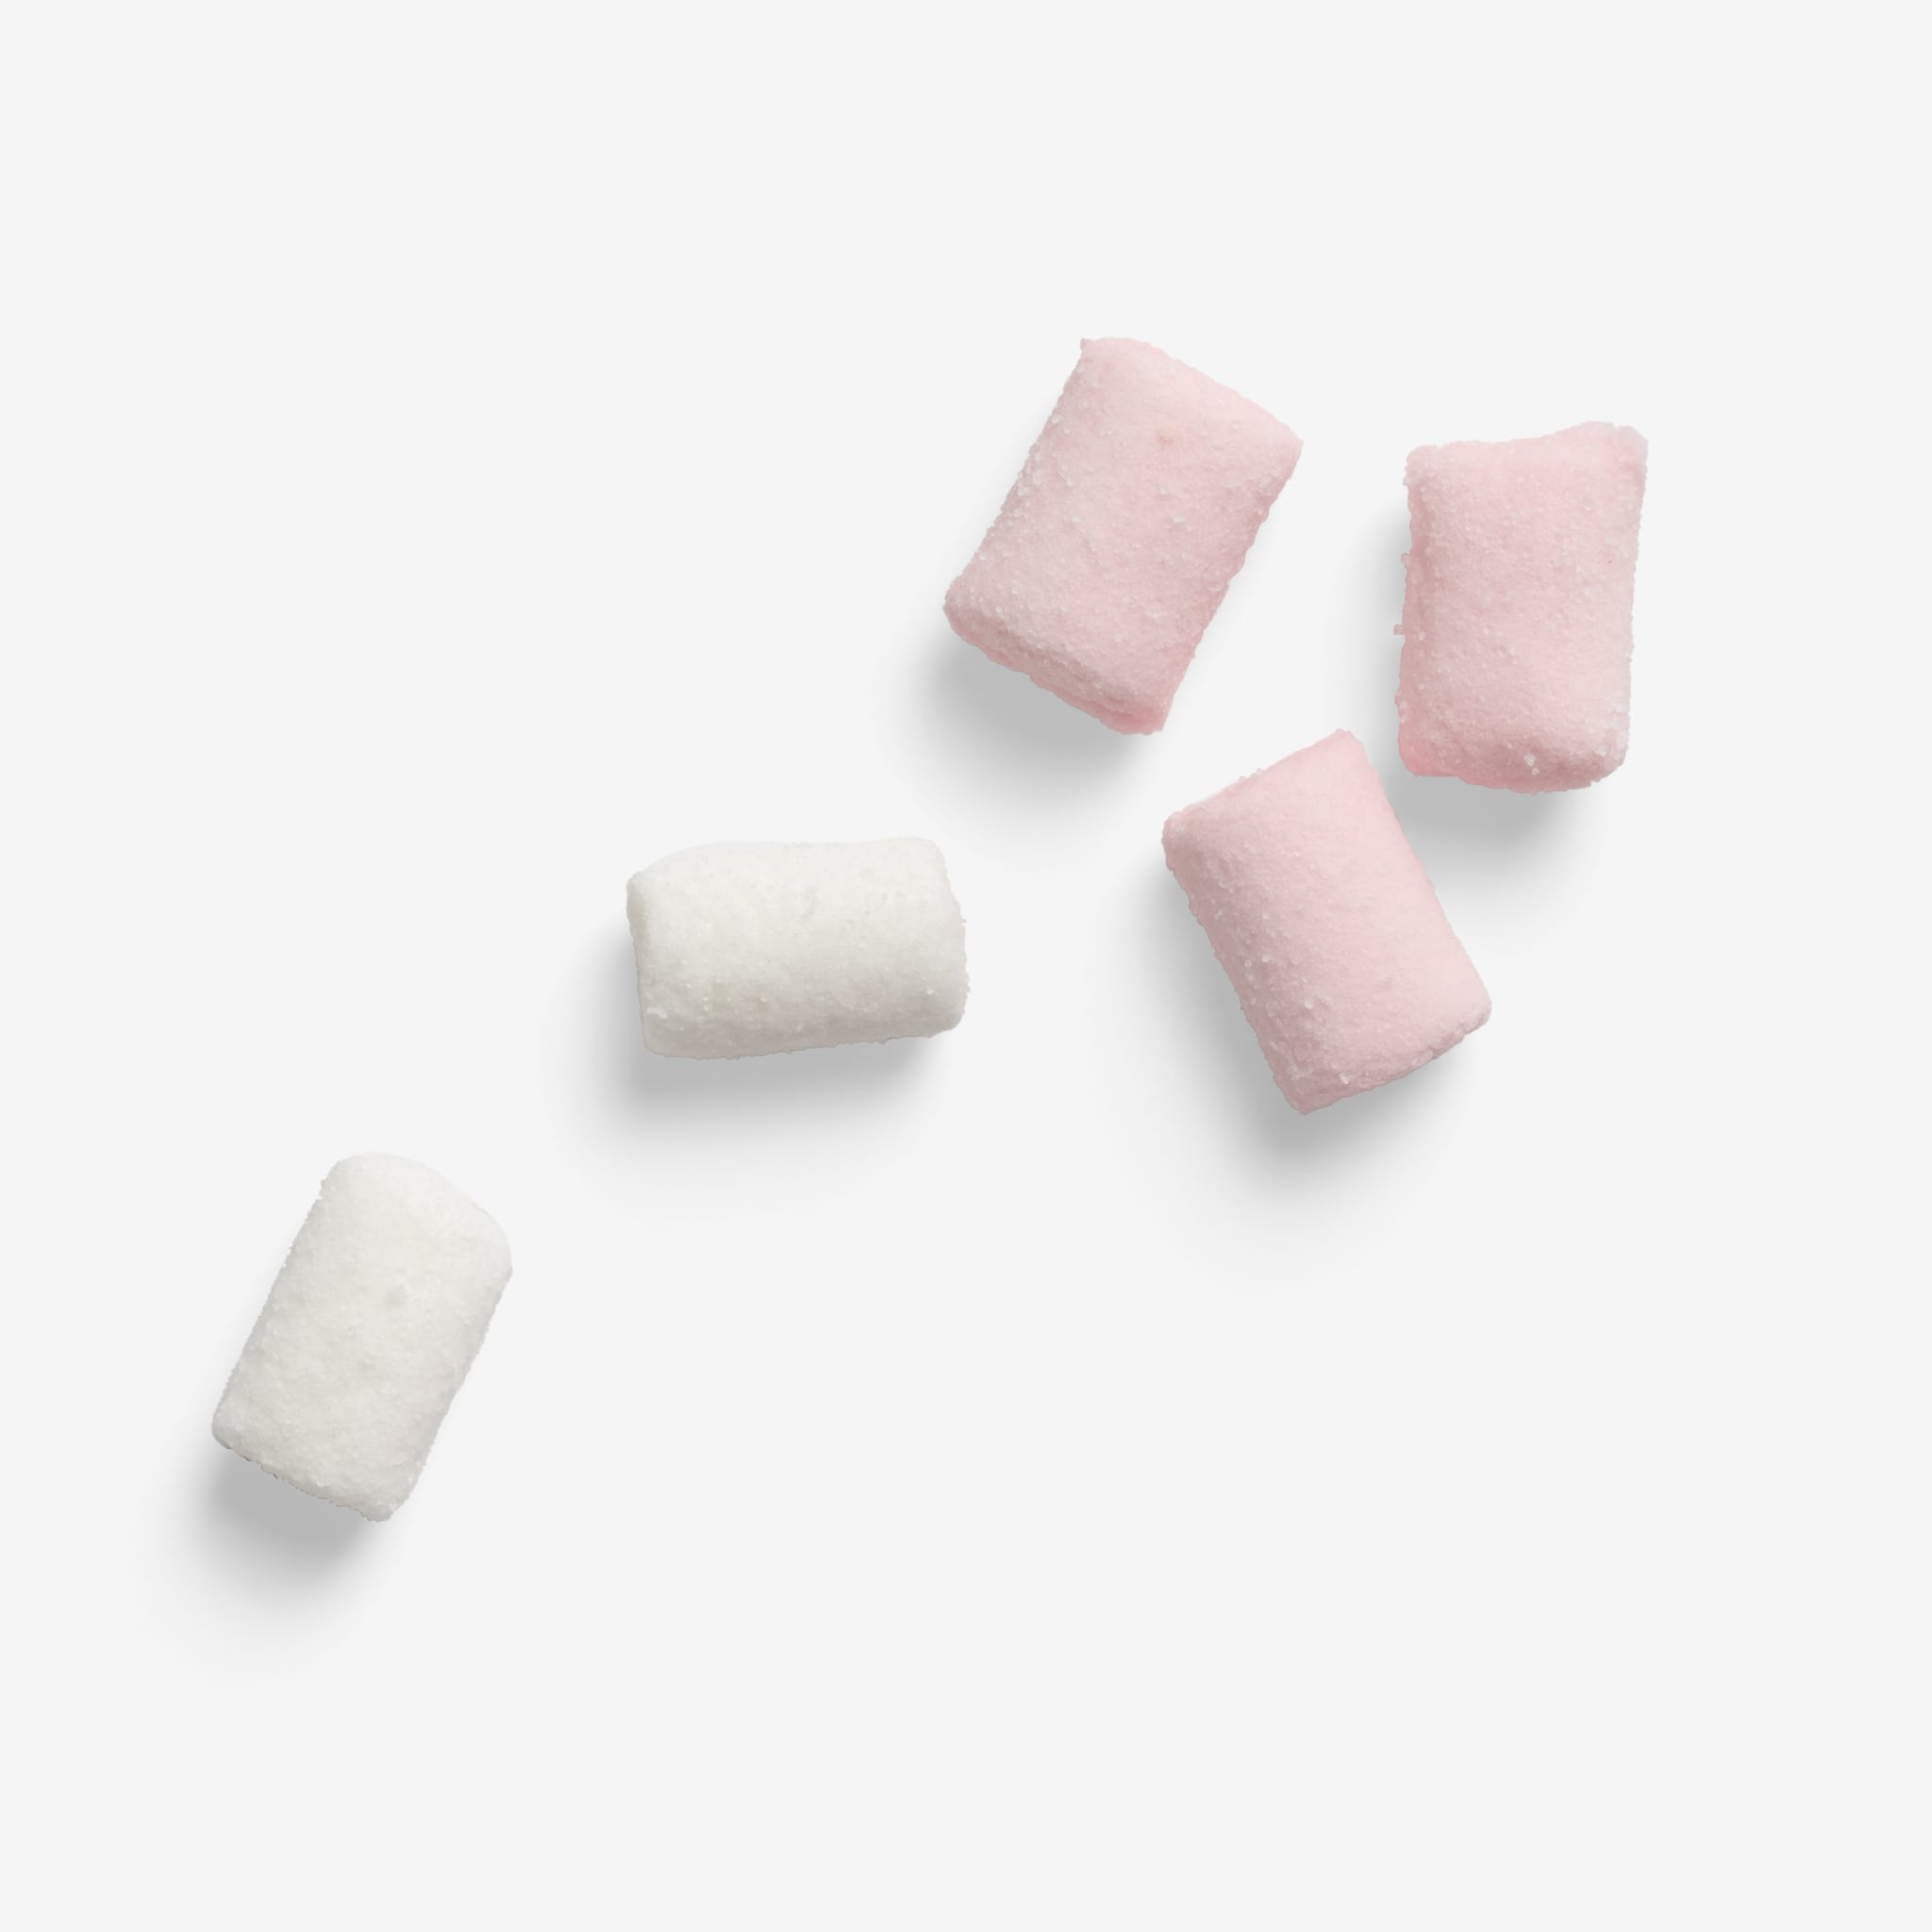 Marshmallow image asset with transparent background